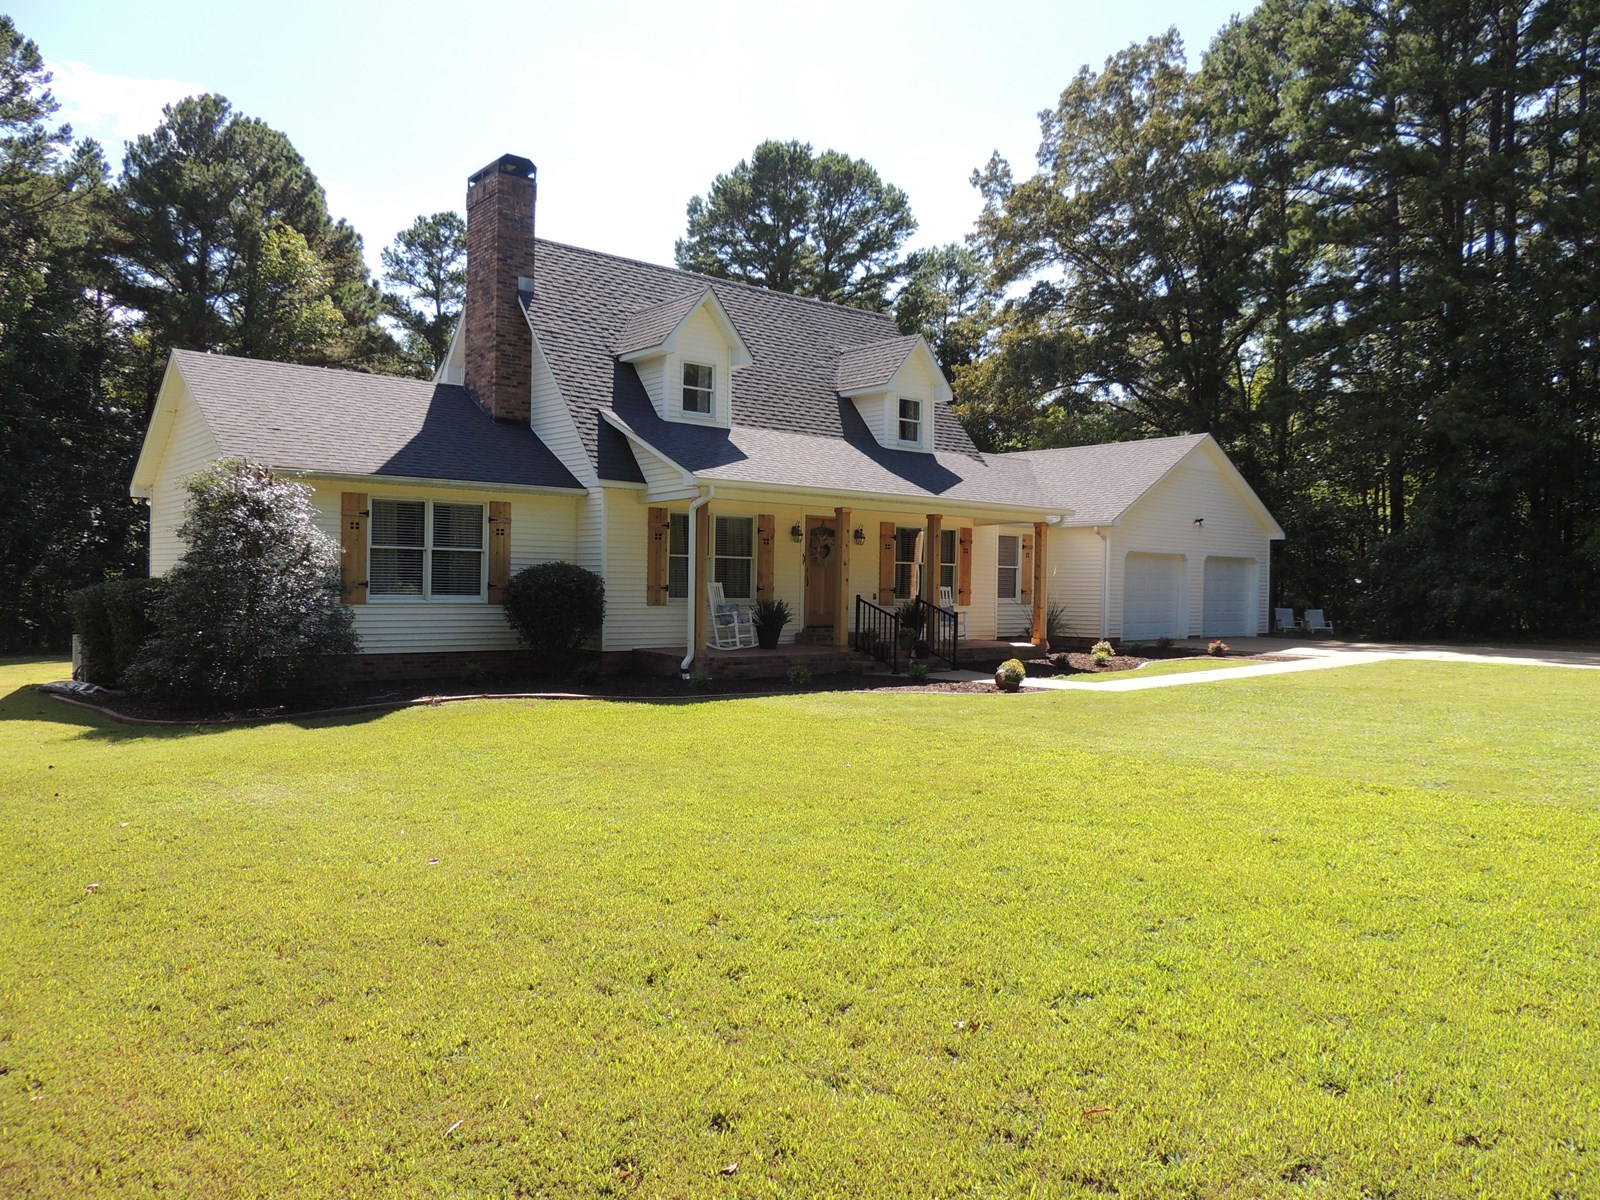 3 BEDROOM COUNTRY HOME FOR SALE IN SAVANNAH TN HARDIN COUNTY